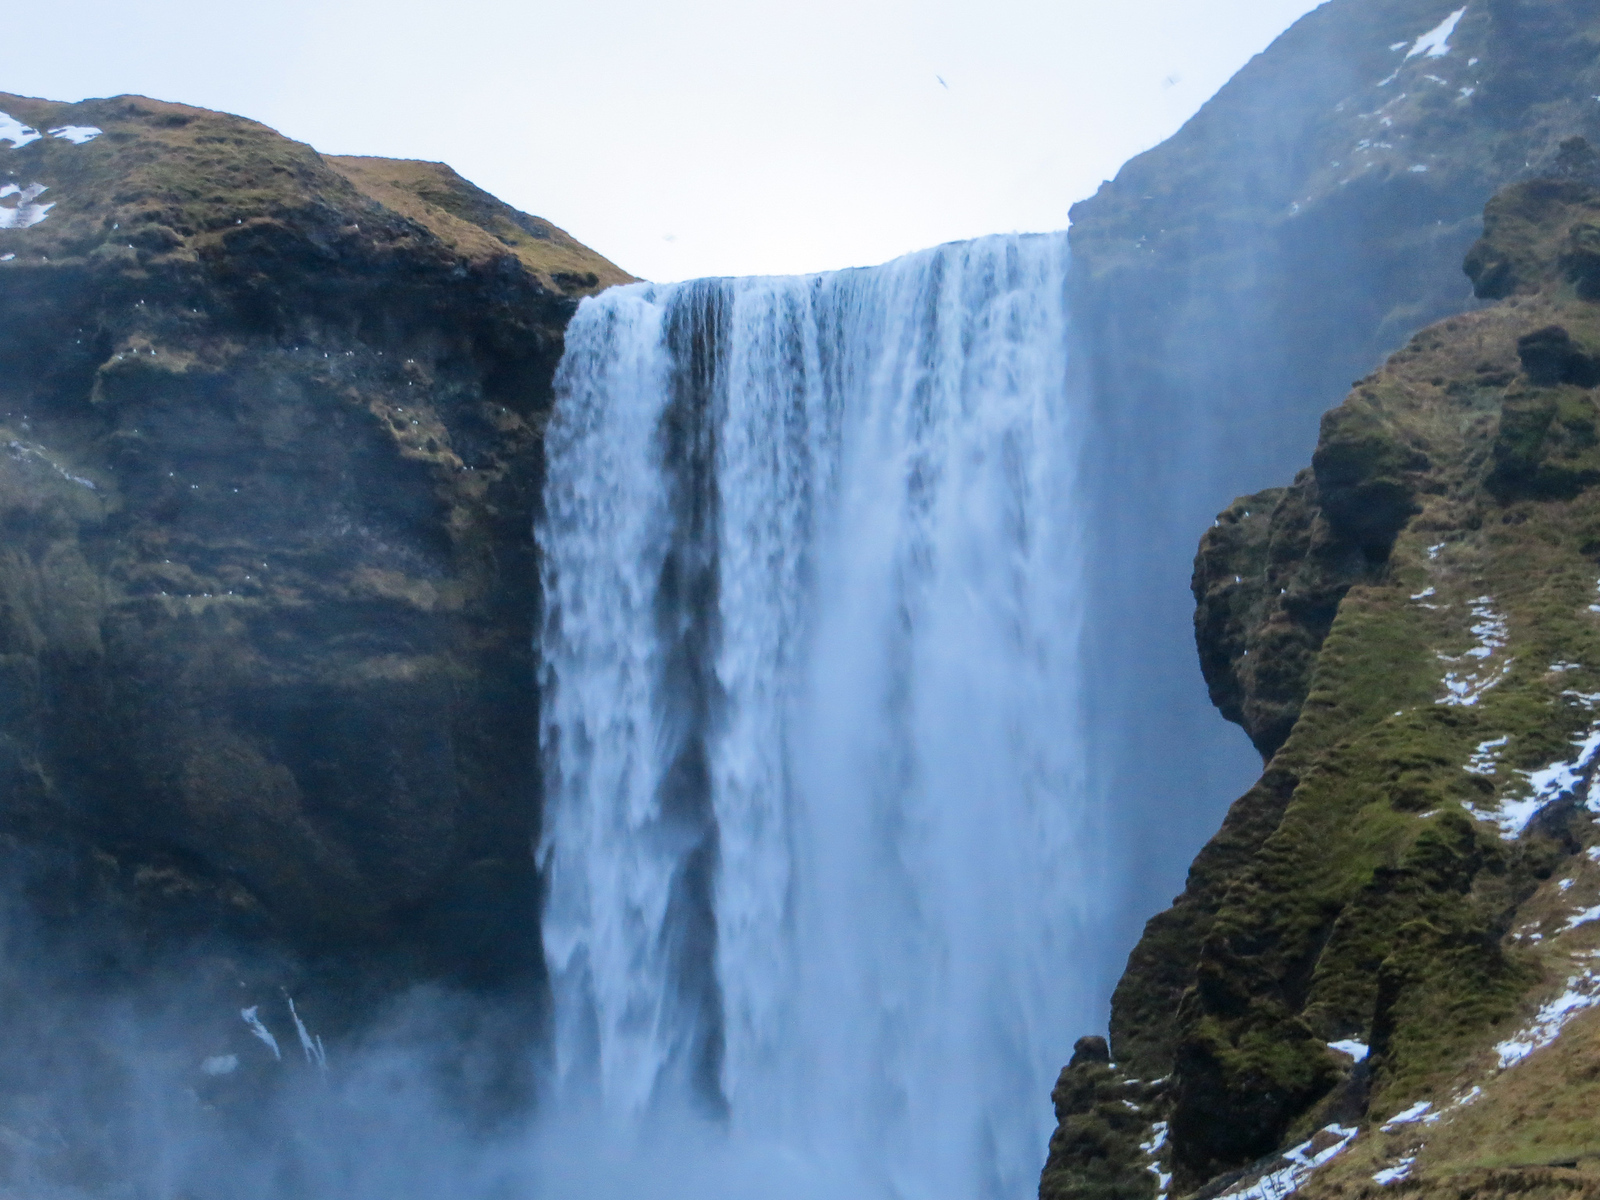 iceland solo travel itinerary needs to have waterfalls